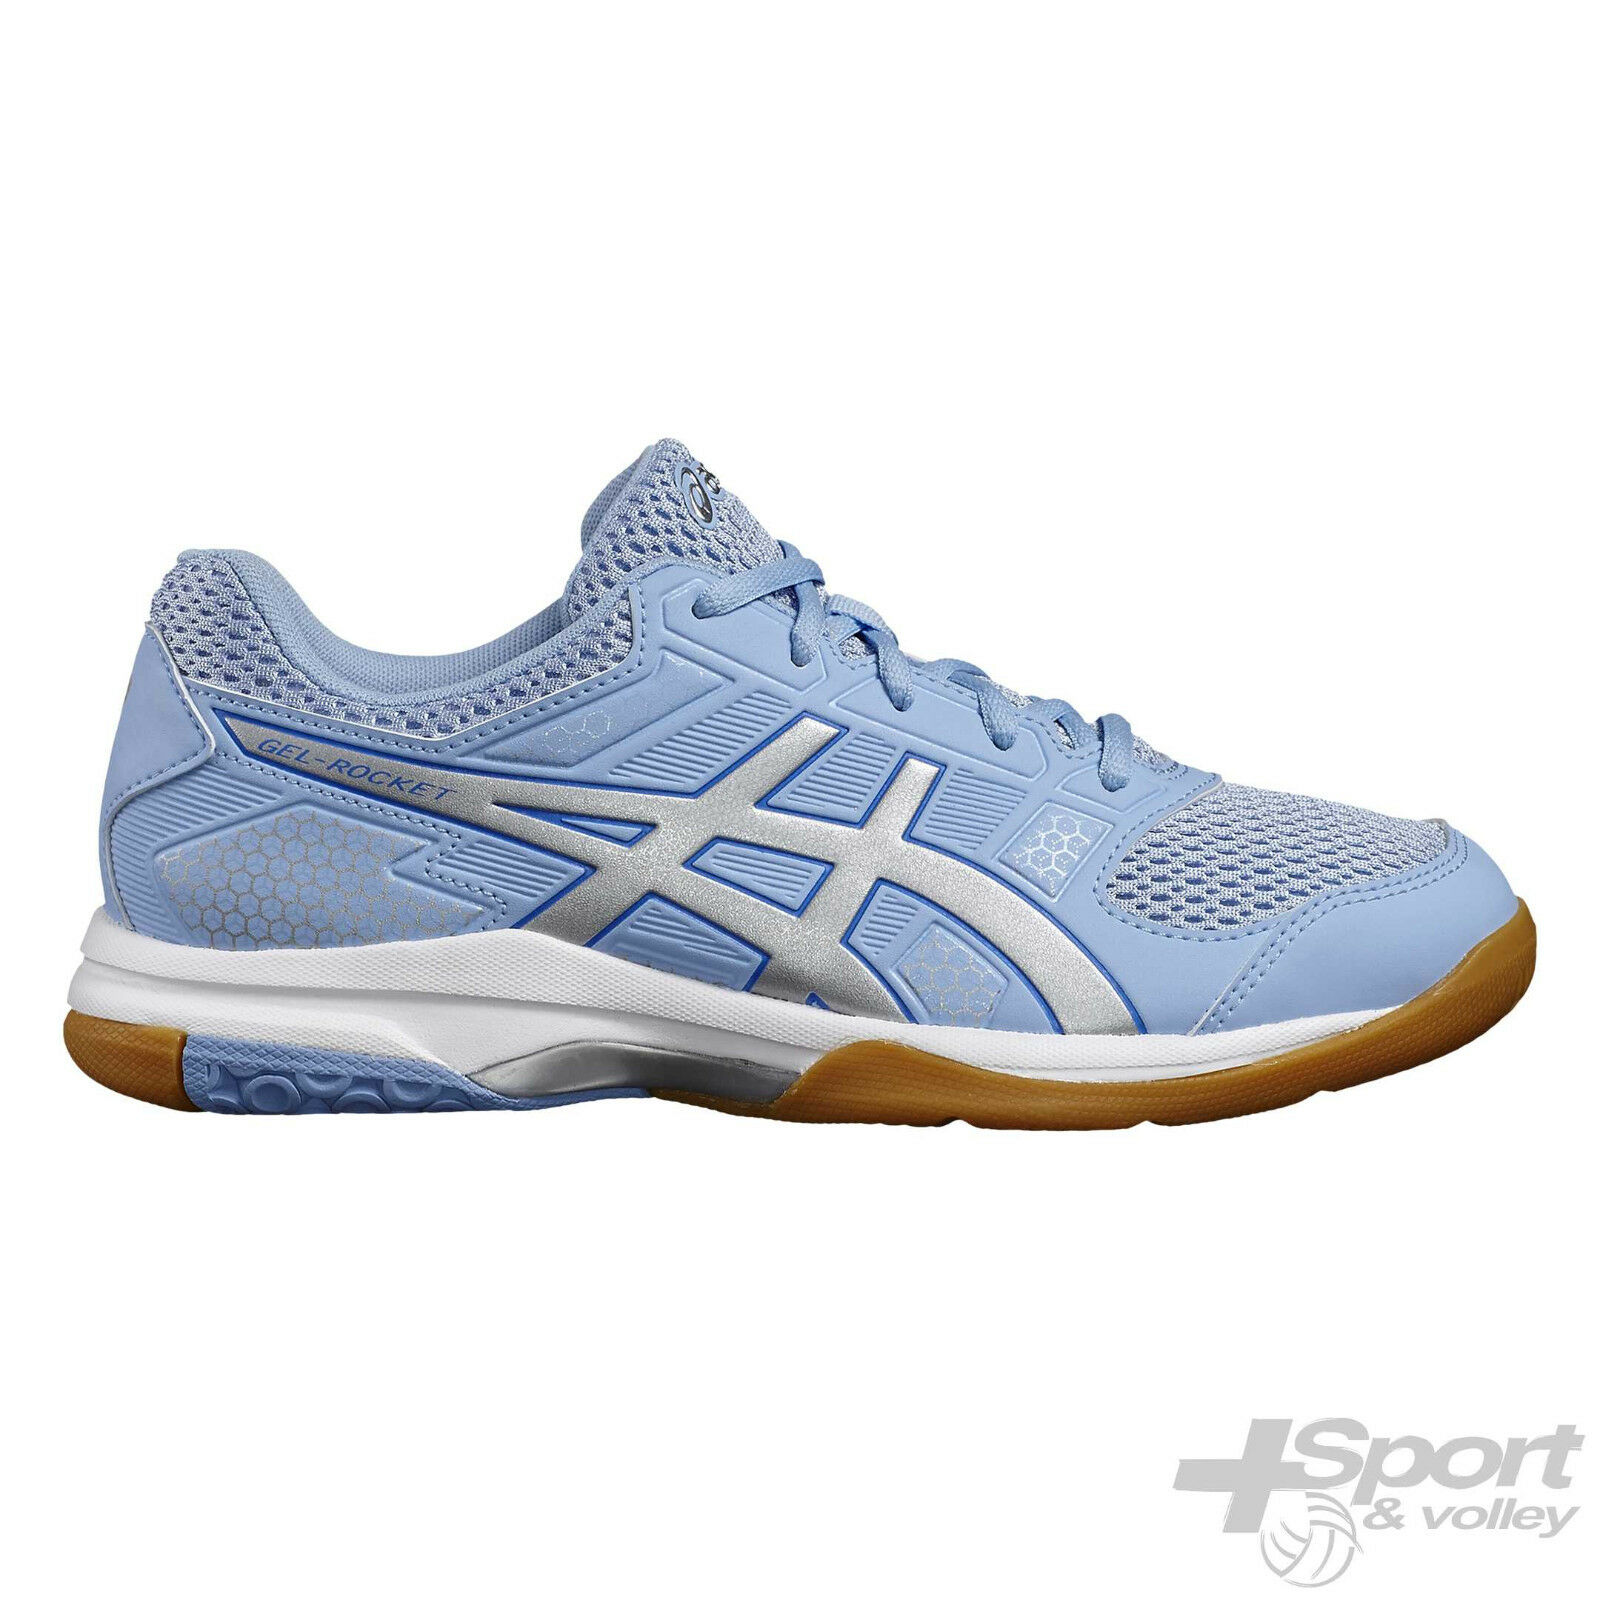 8 Donna Asics B756y Scarpa Low Rocket 3993 Gel Volley BWcc0R